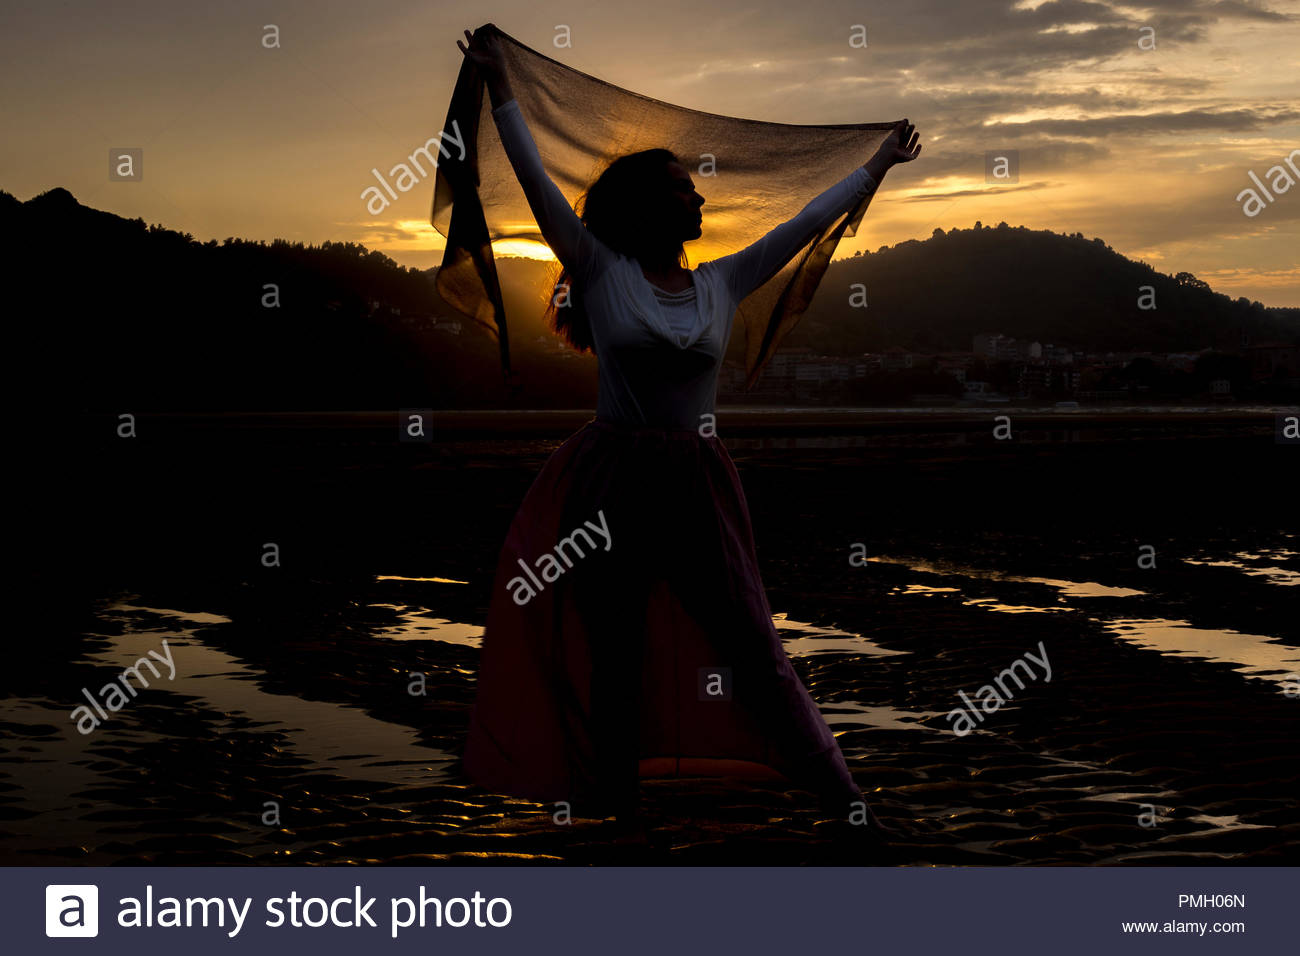 Melancholic woman while the sun goes down - Stock Image